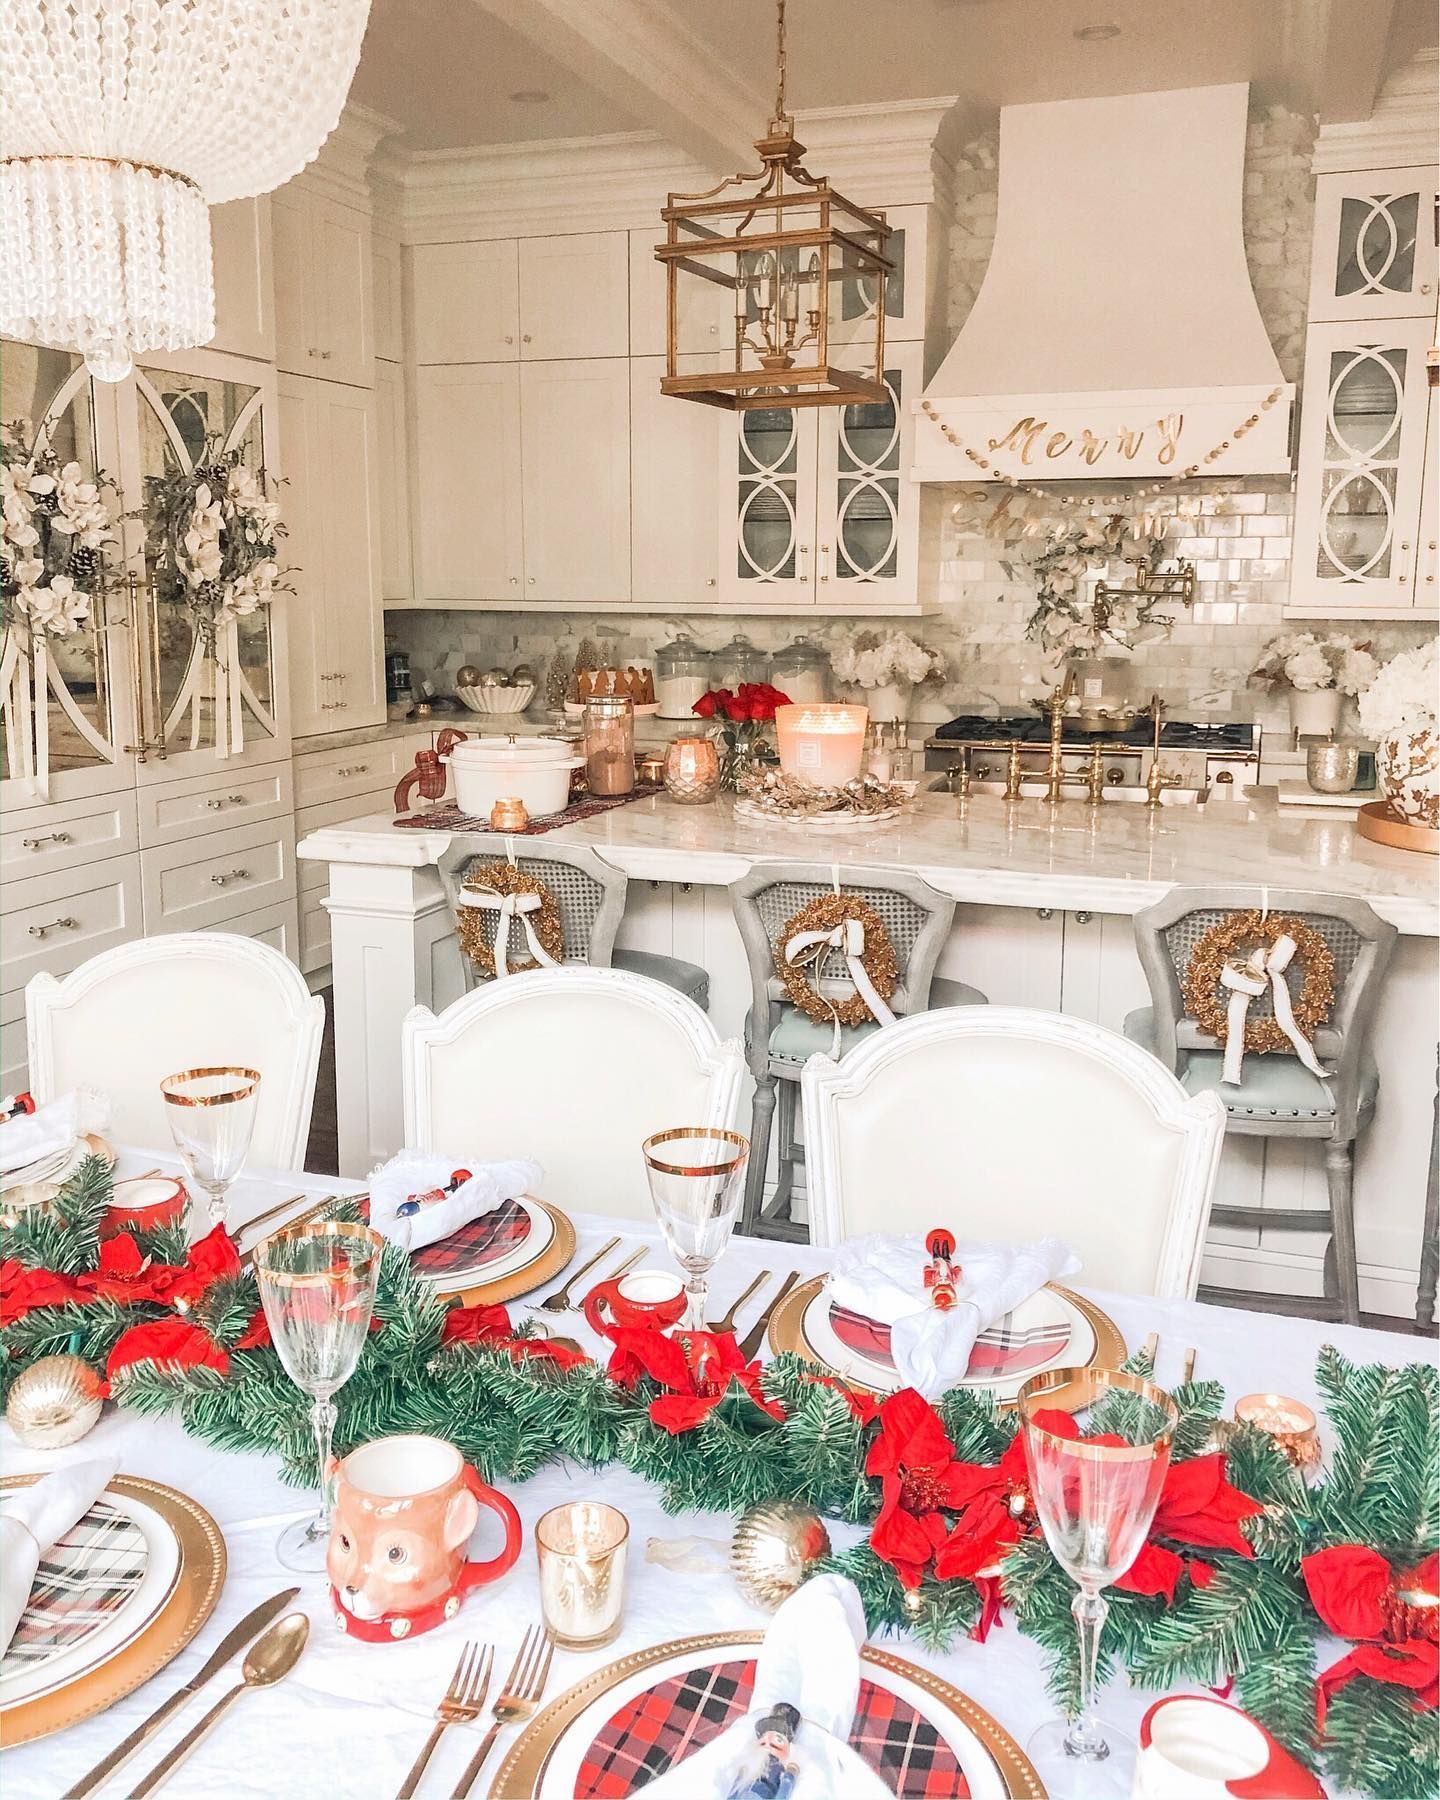 I'm sharing SIMPLE and FUN Christmas entertaining ideas on my blog